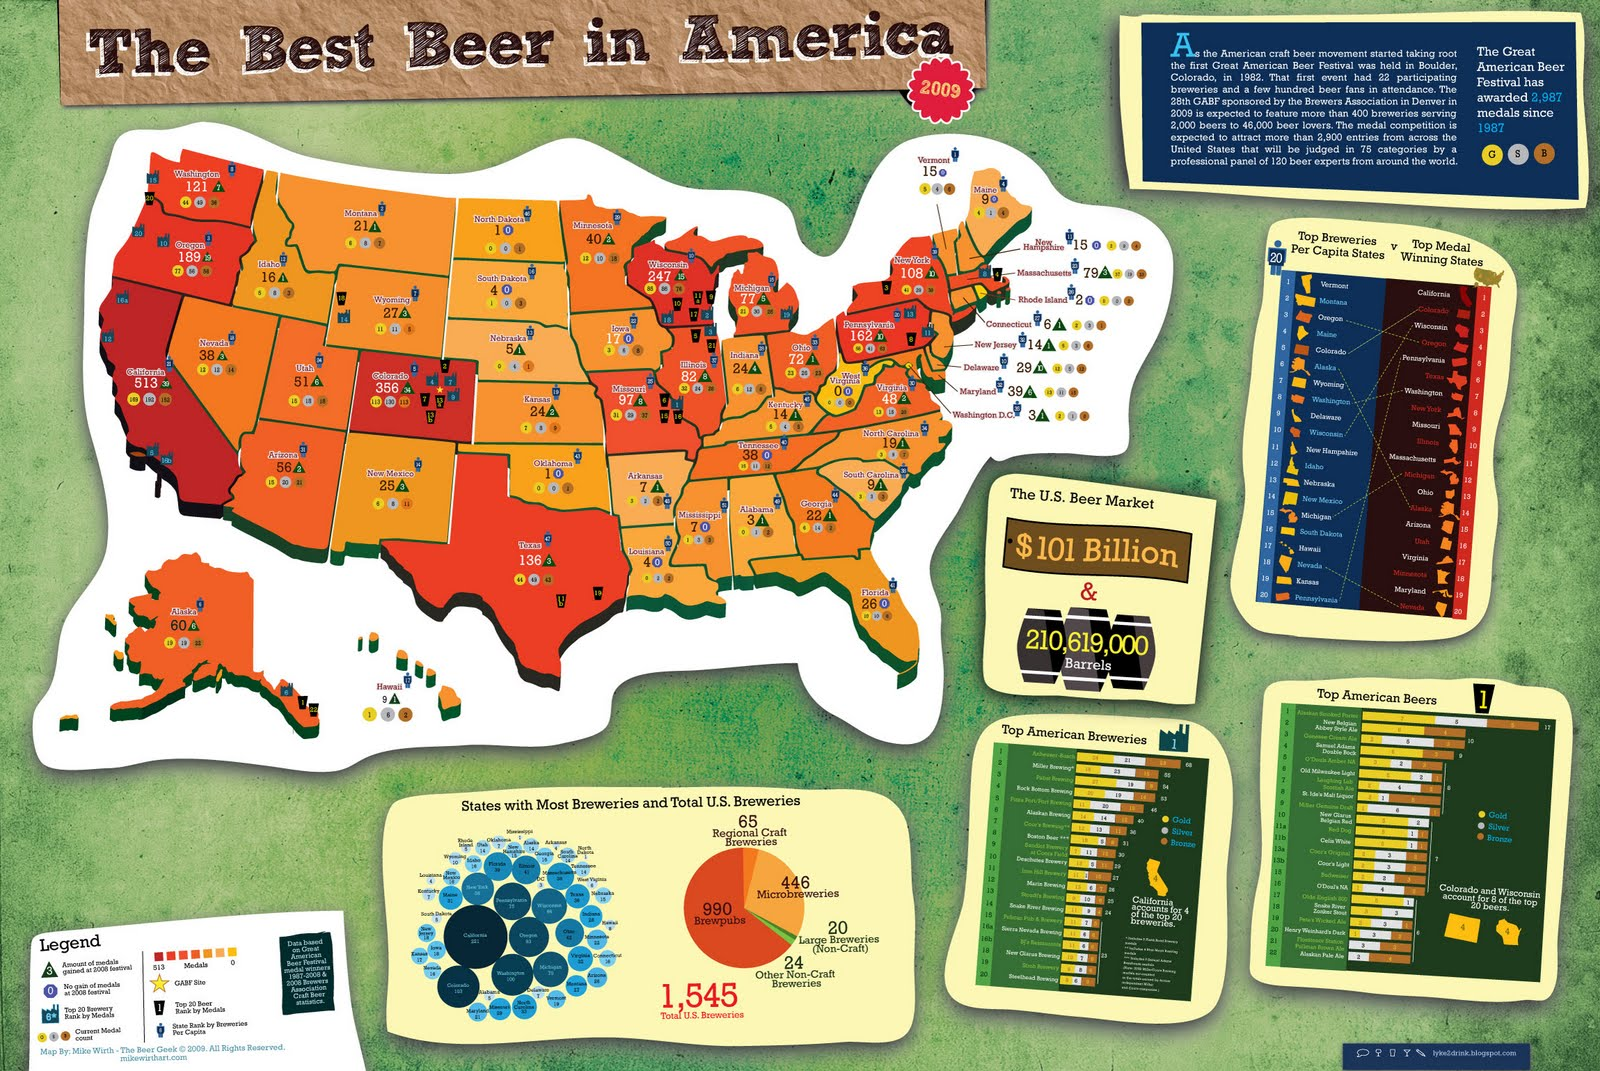 Mike Wirth: The Best Beer in America 2009